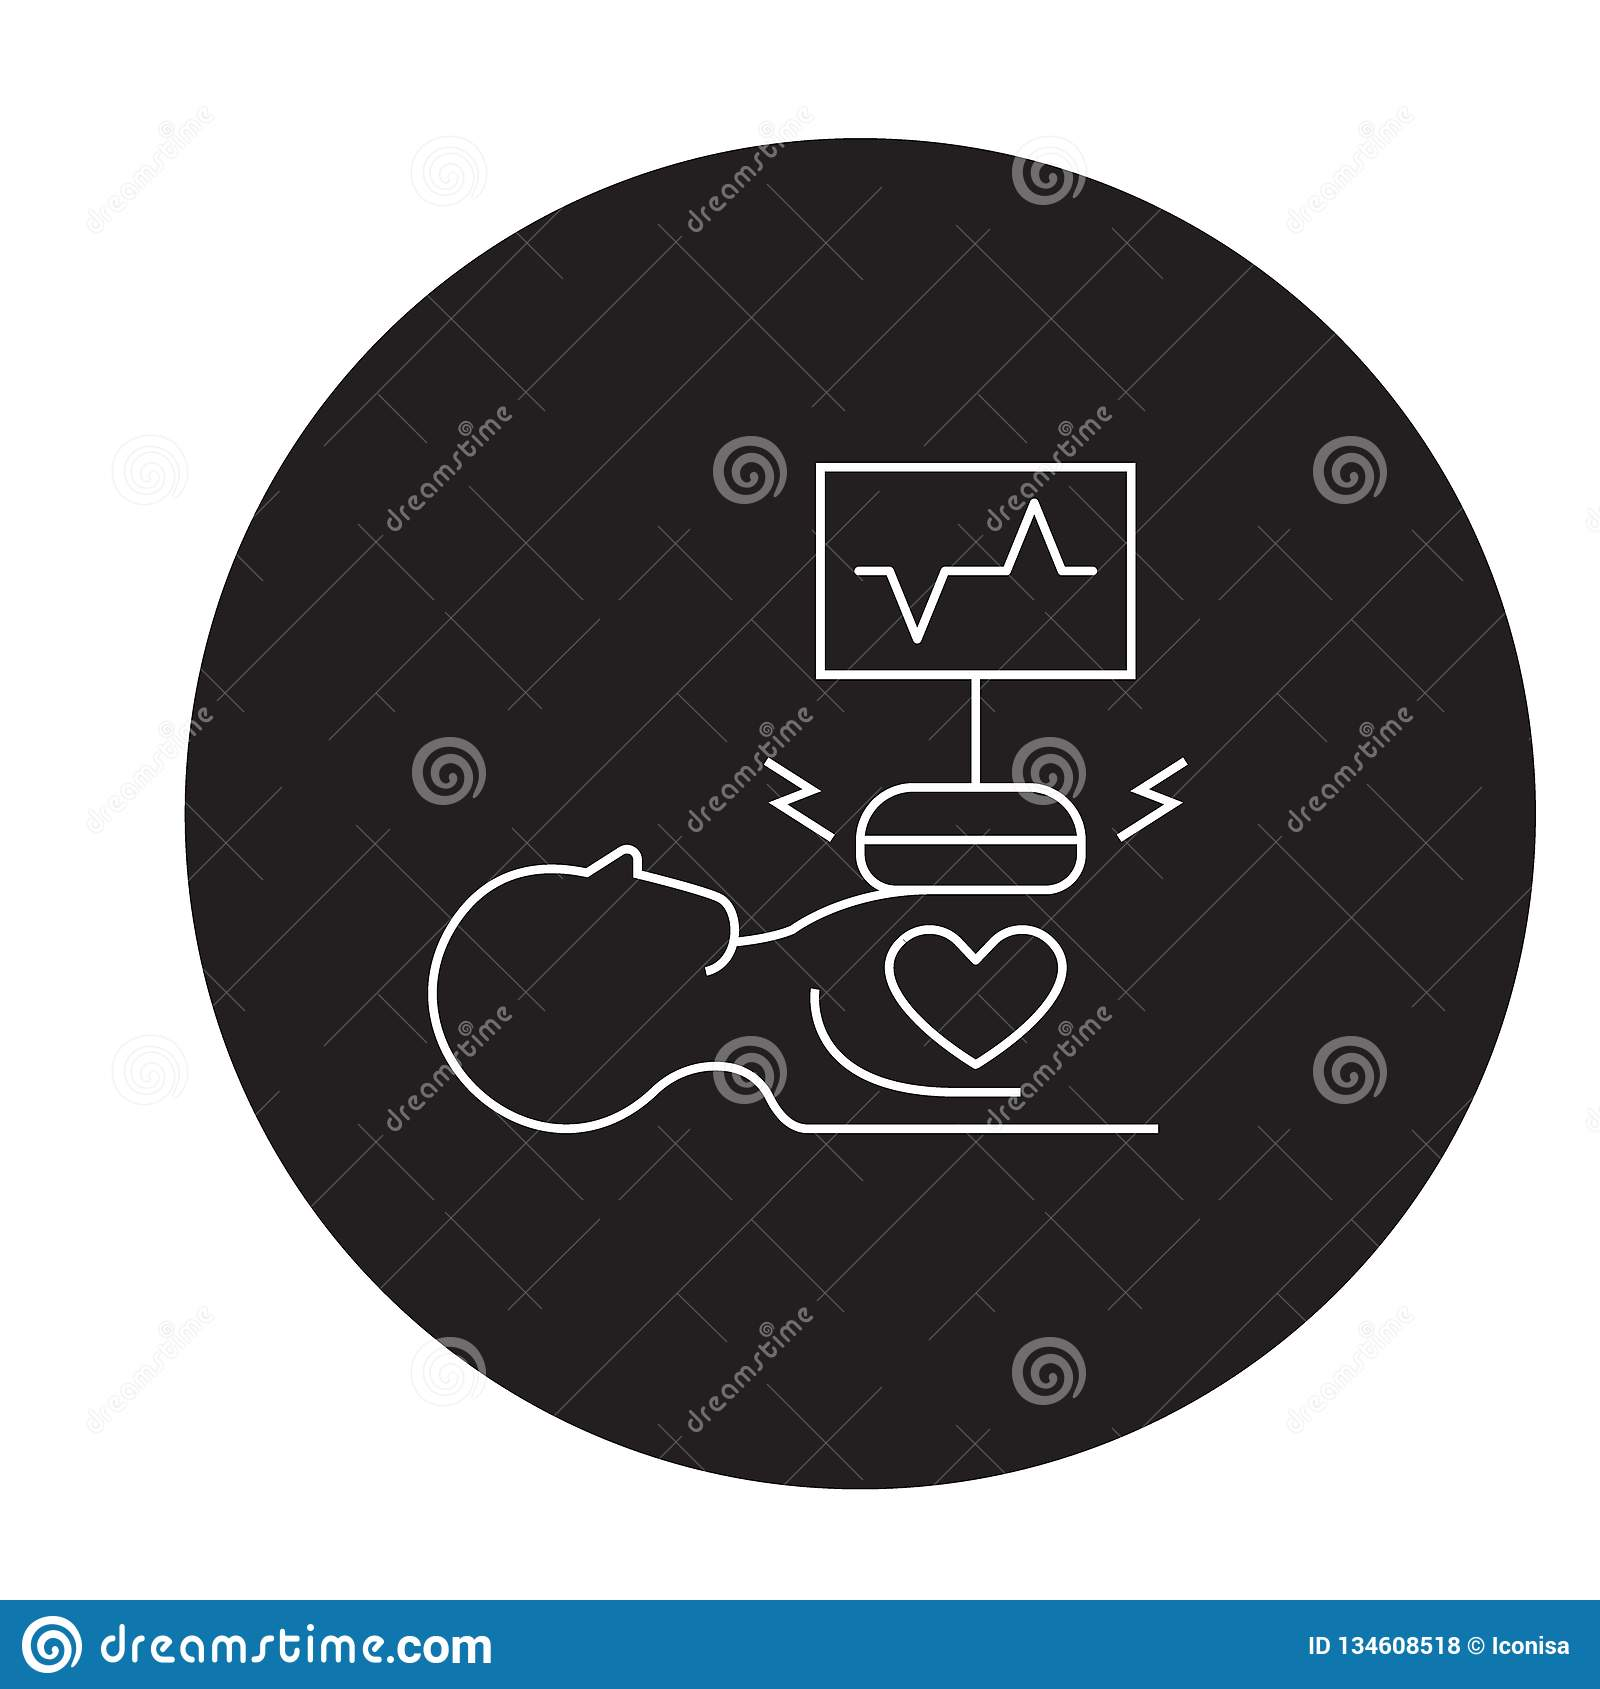 Heart Surgery Black Vector Concept Icon Heart Surgery Flat Illustration Sign Stock Vector Illustration Of Diagnosis Hospital 134608518